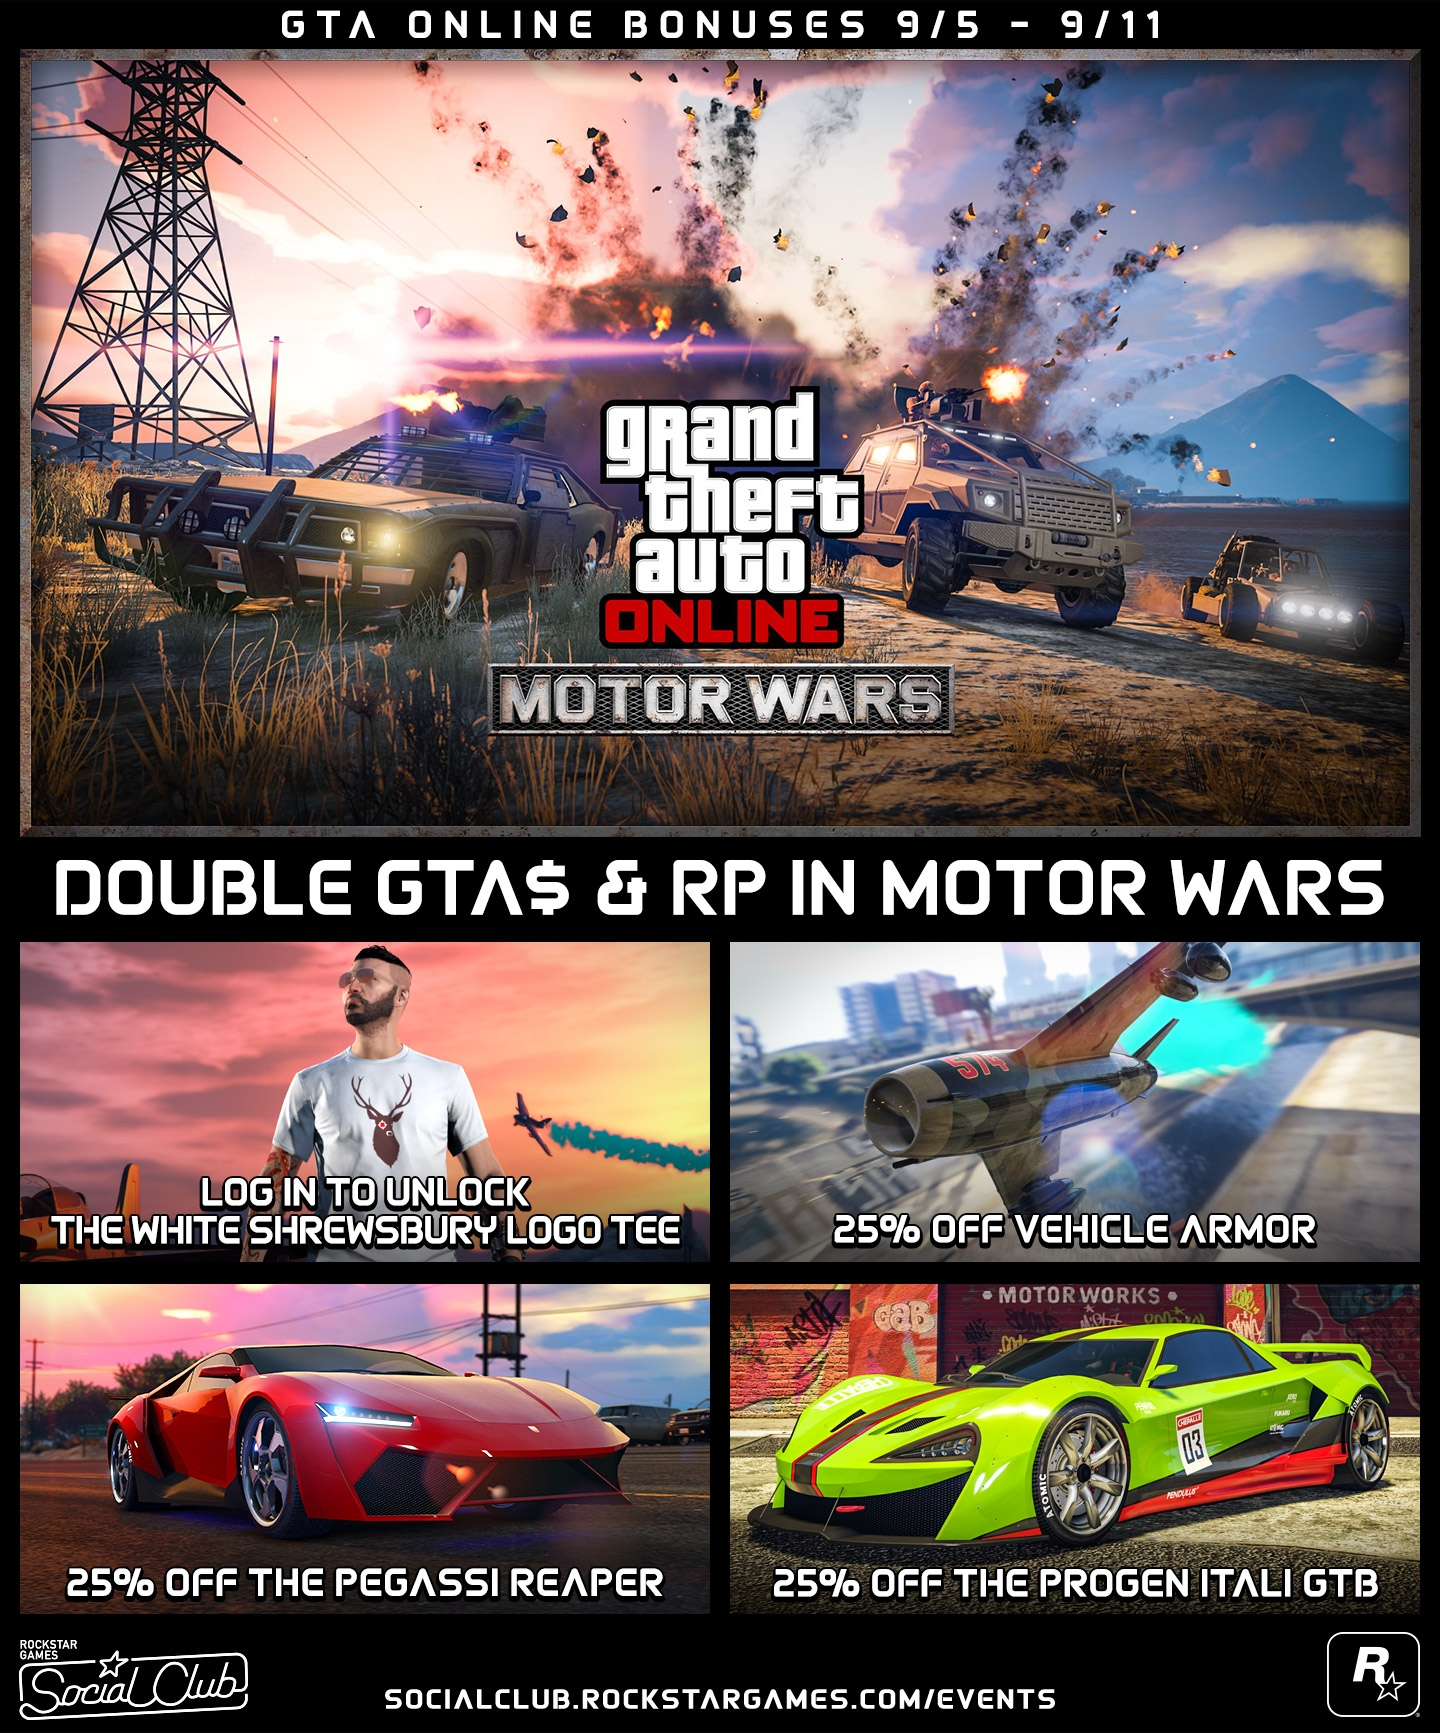 Double Gta Rp In Motor Wars And Discounts Gta Online